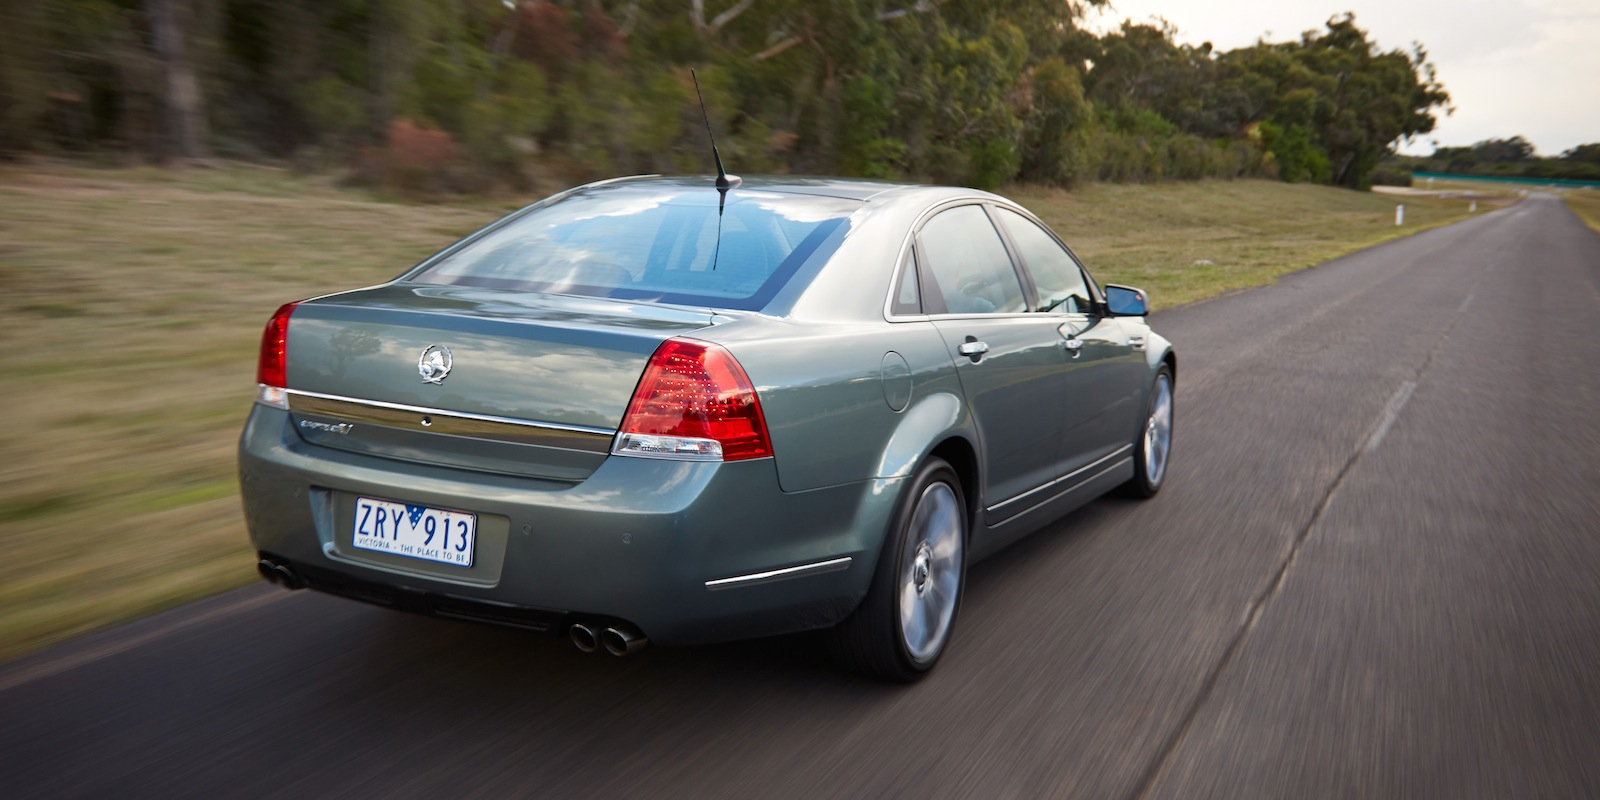 Holden Commodore  Caprice    40 000 Cars Recalled Over